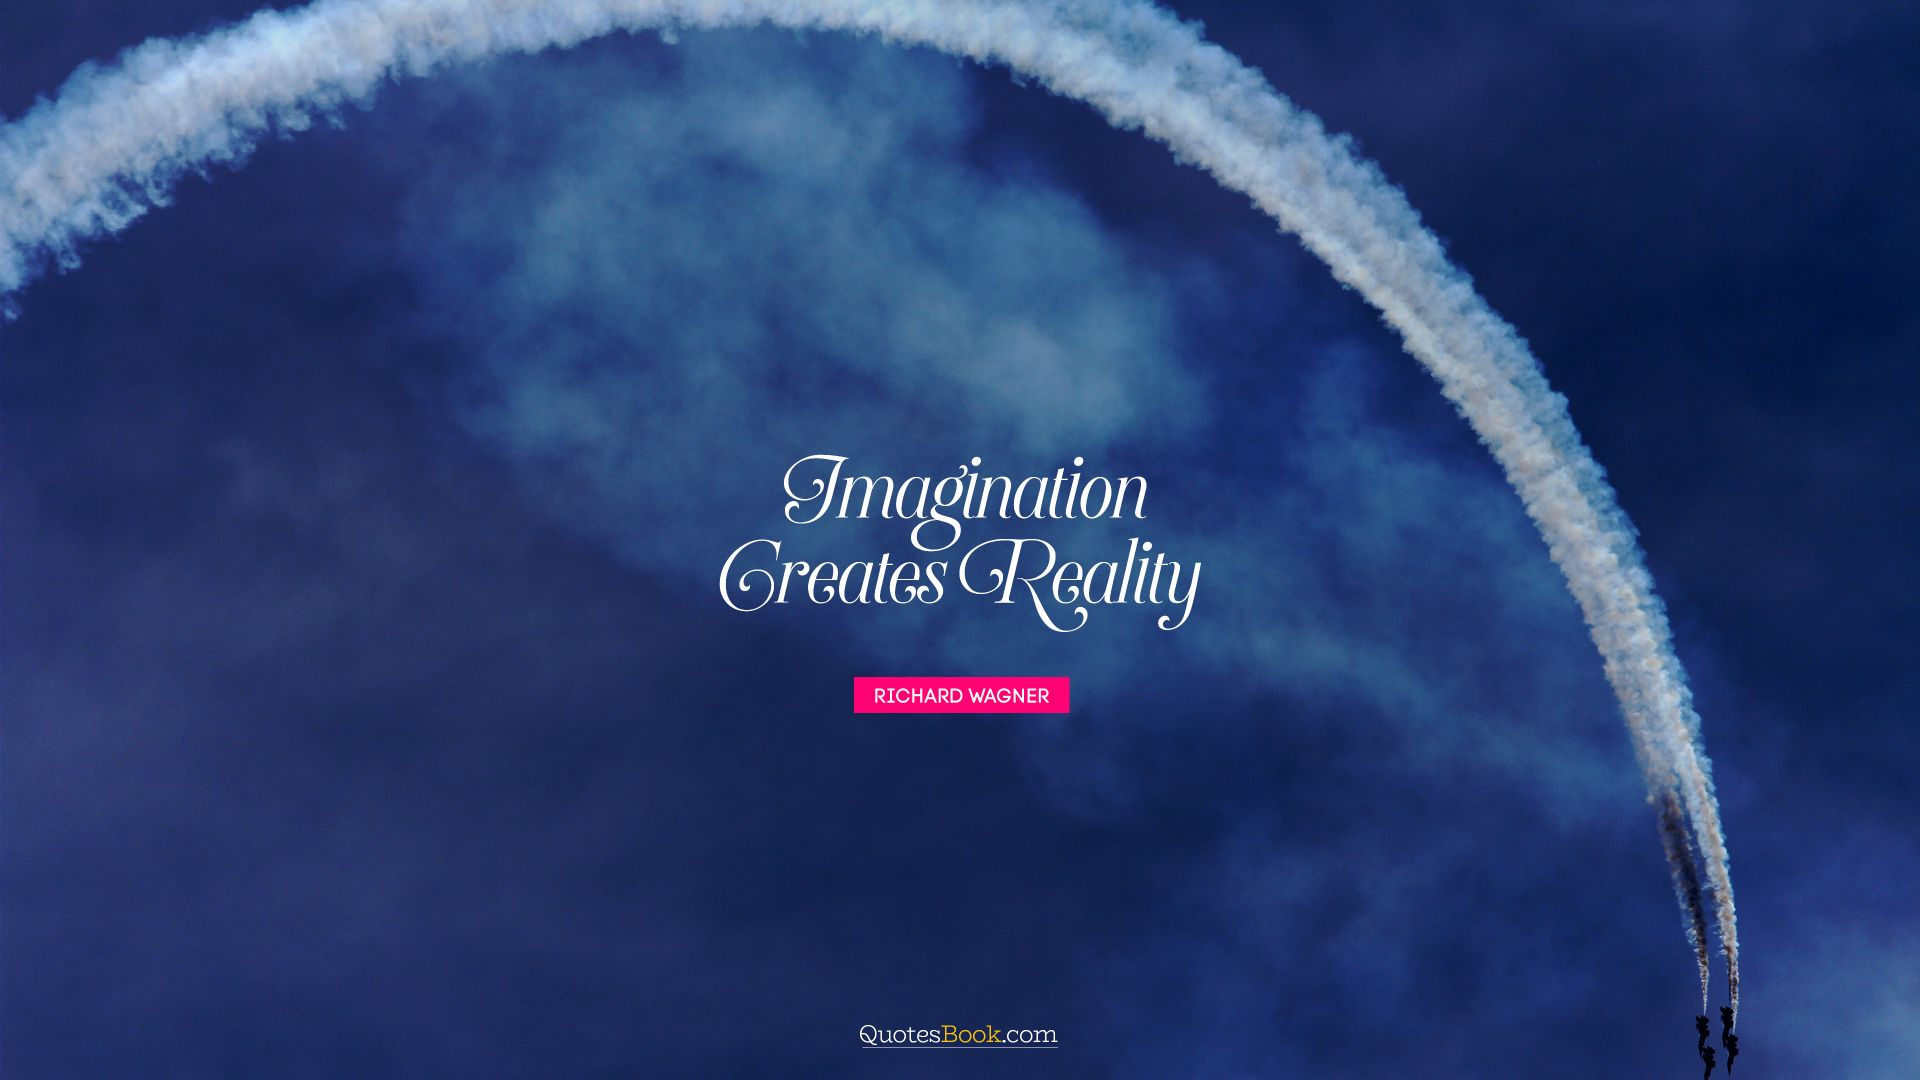 Imagination creates reality. - Quote by Richard Wagner